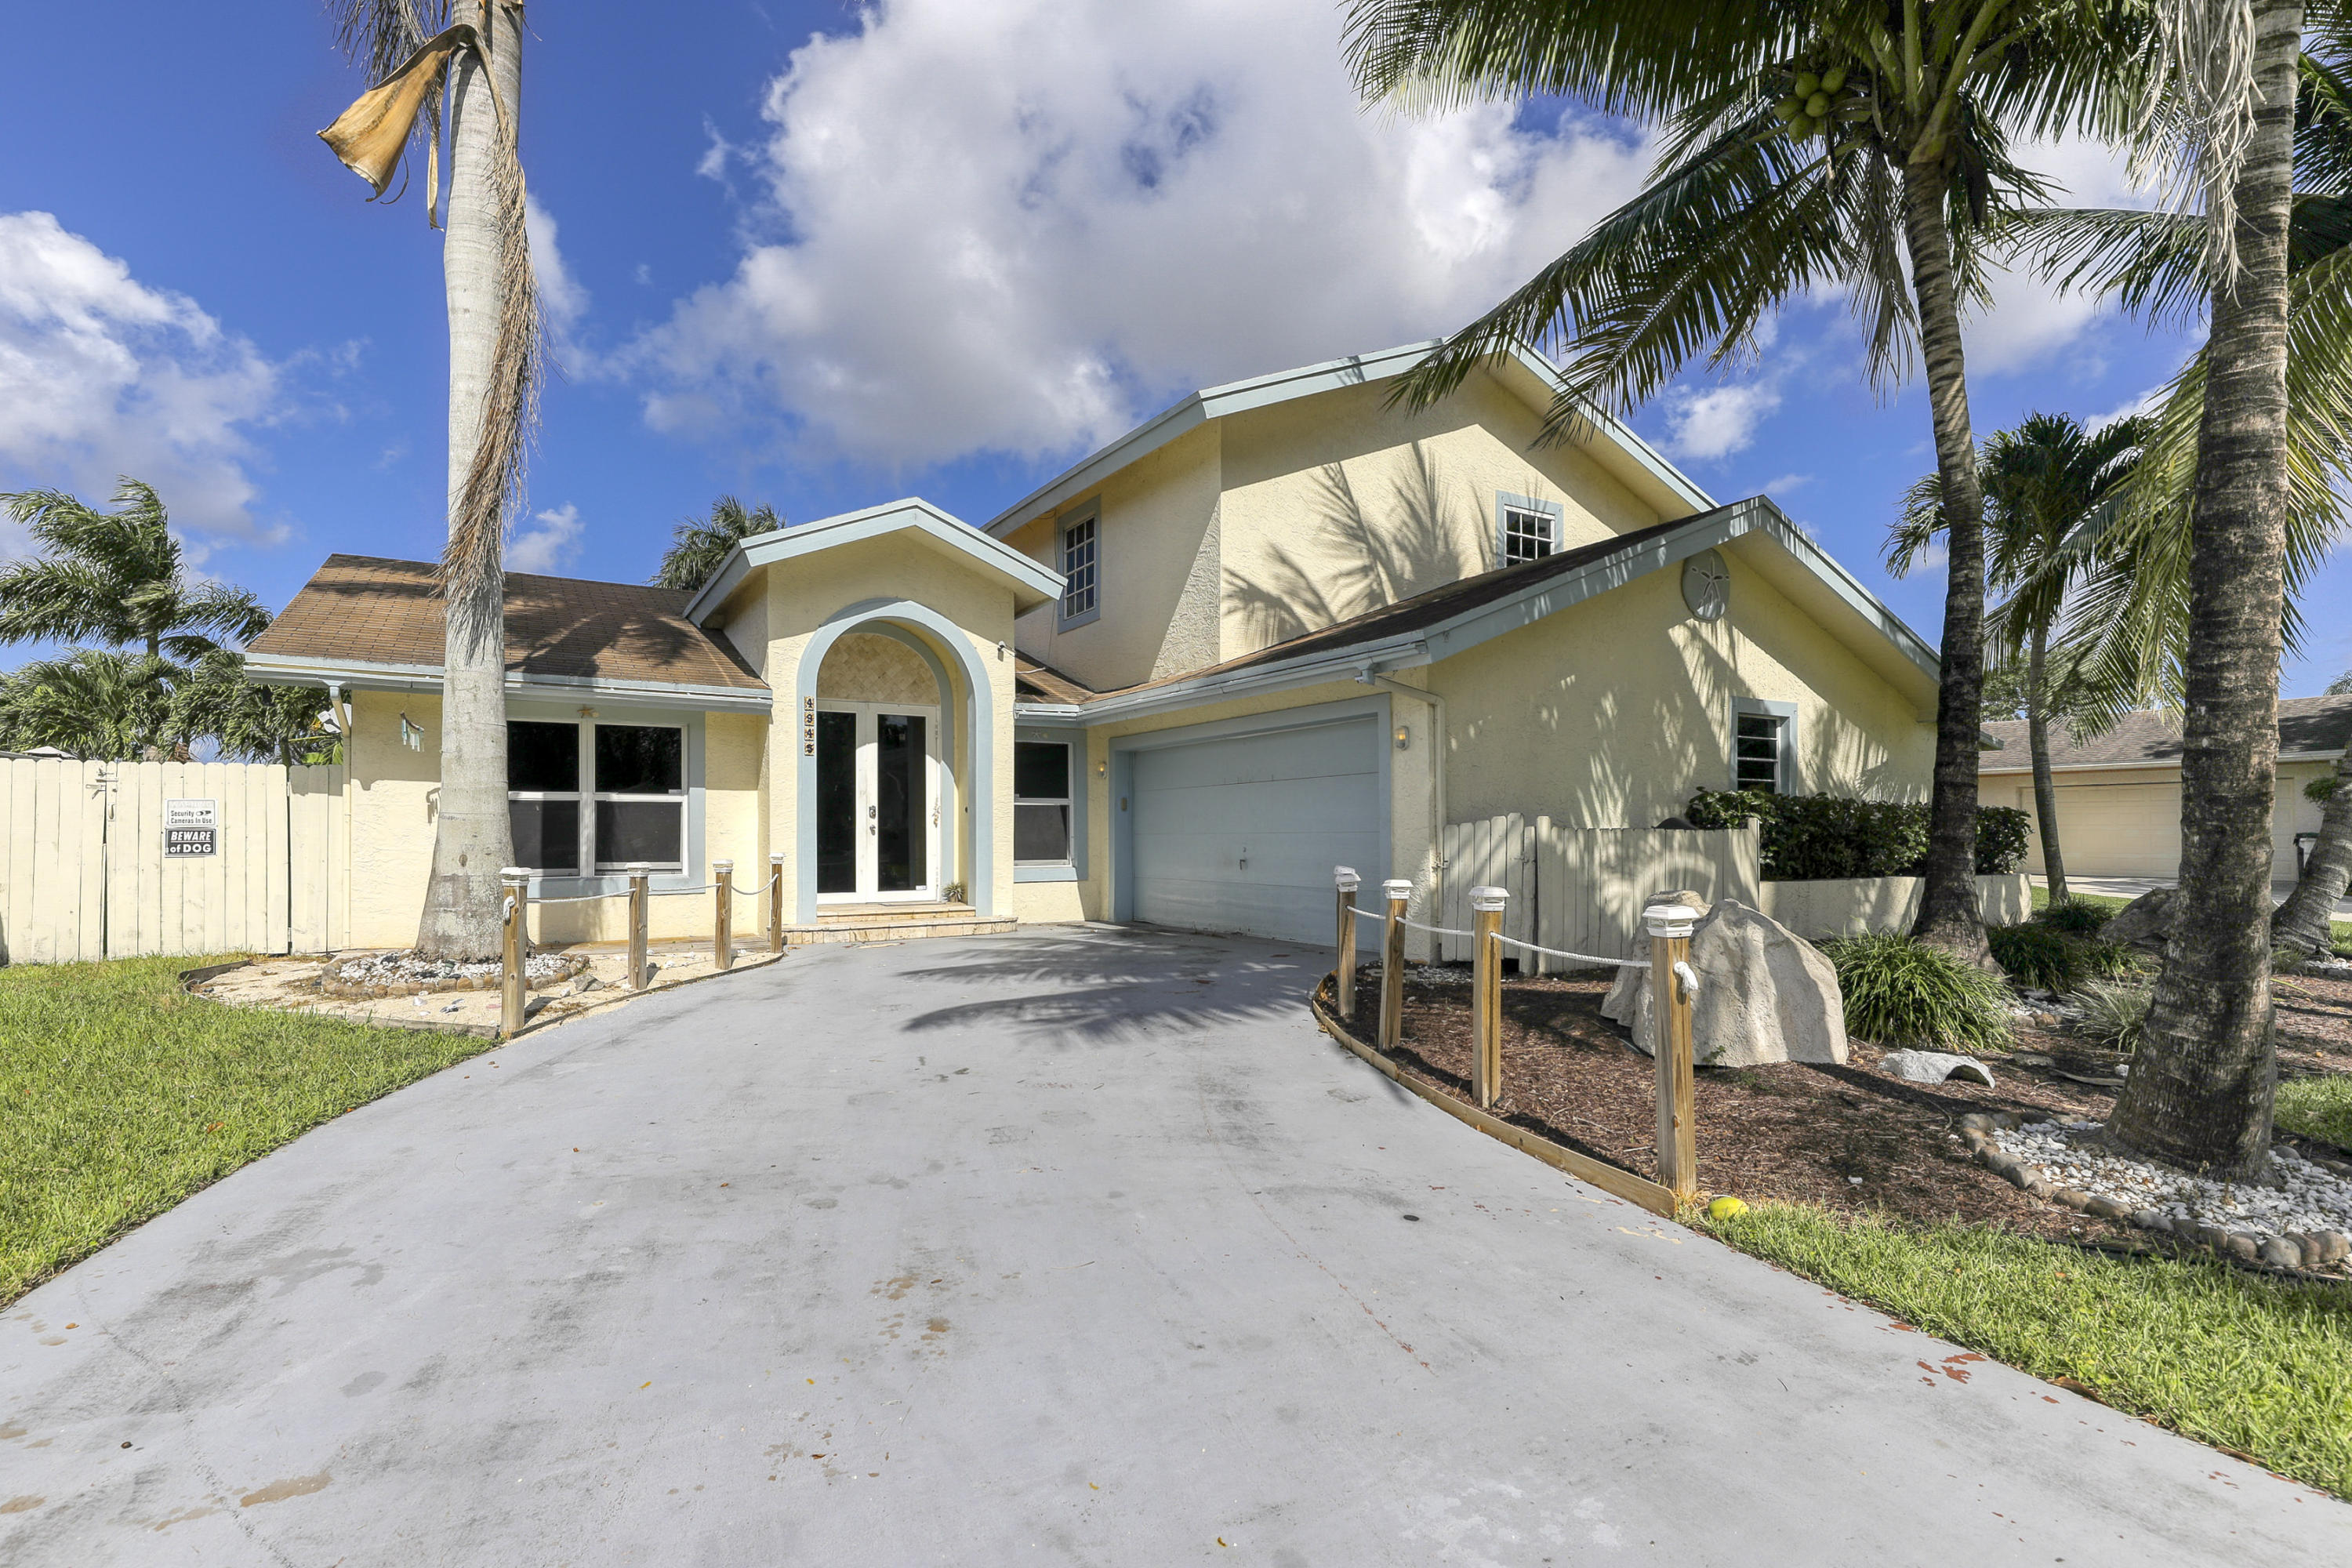 4945 NW 6th Street - Coconut Creek, Florida